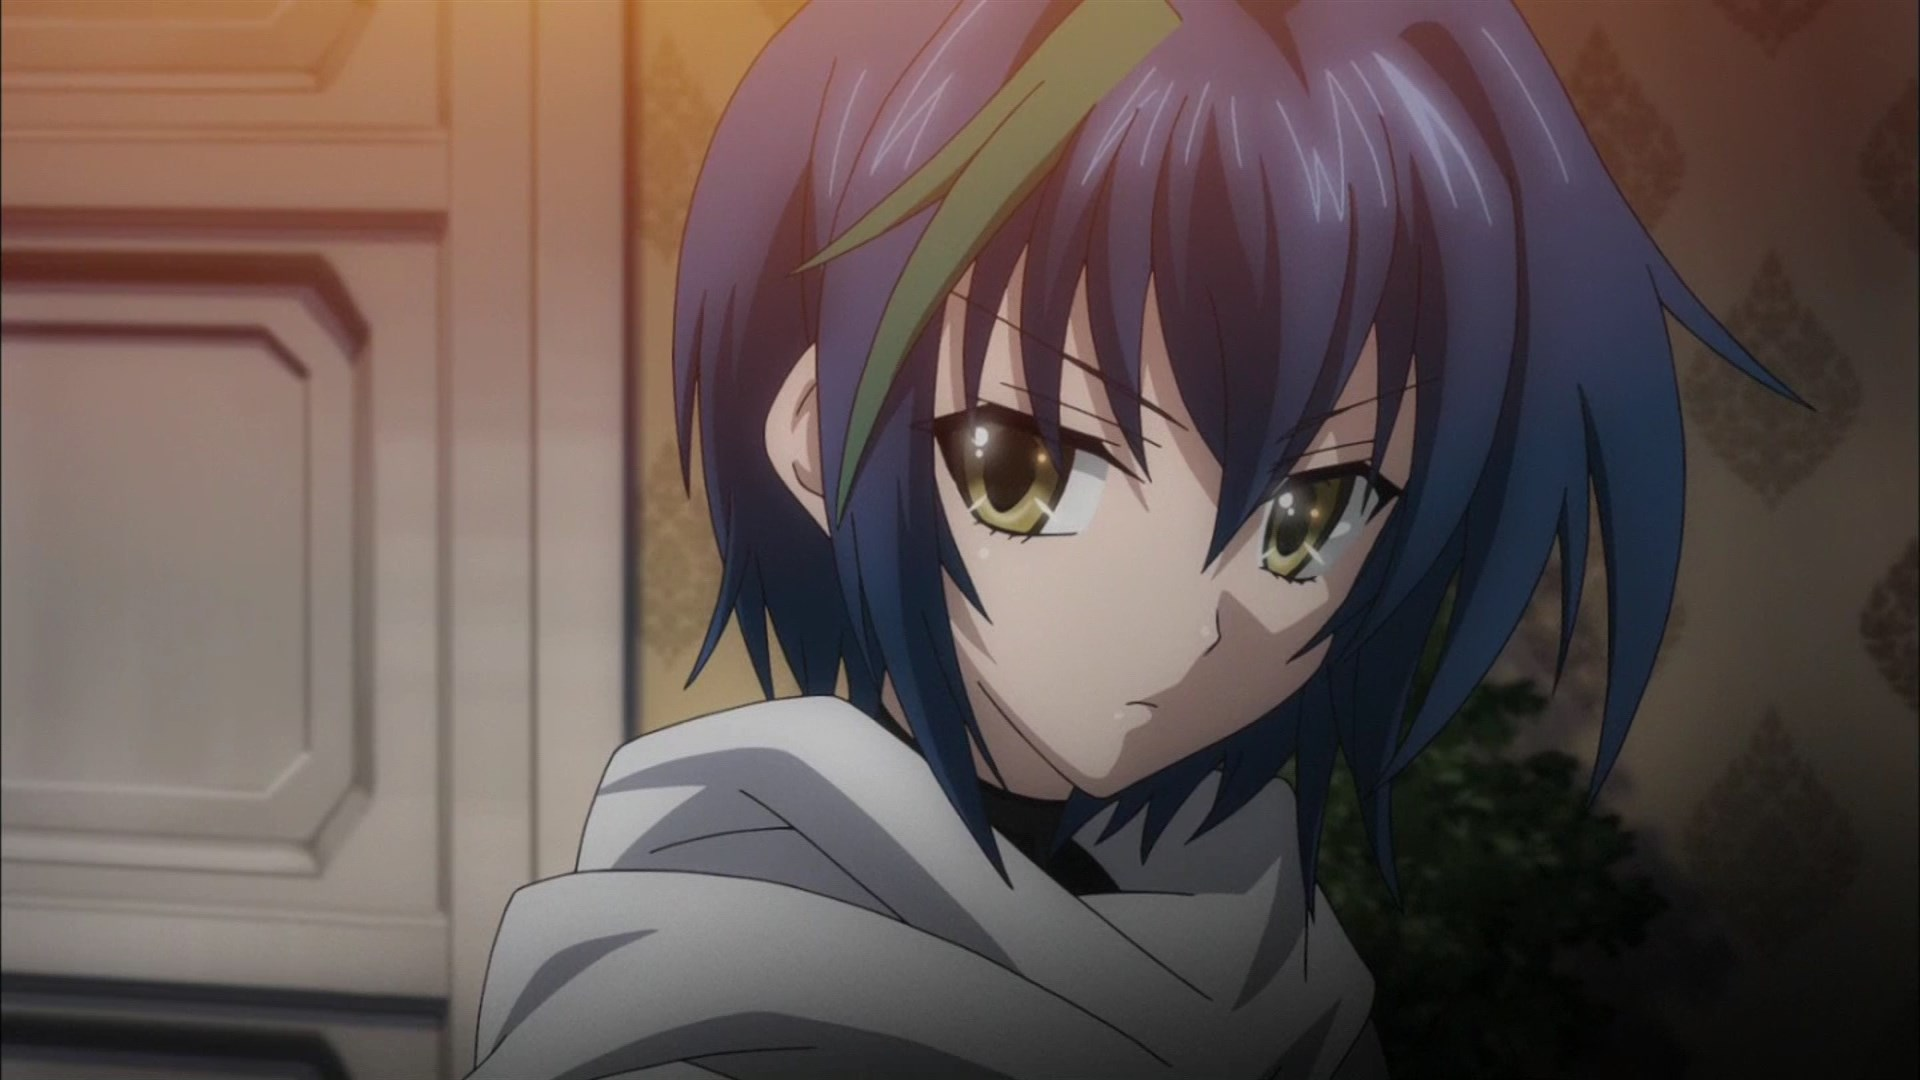 xenovia highschool dxd - photo #36